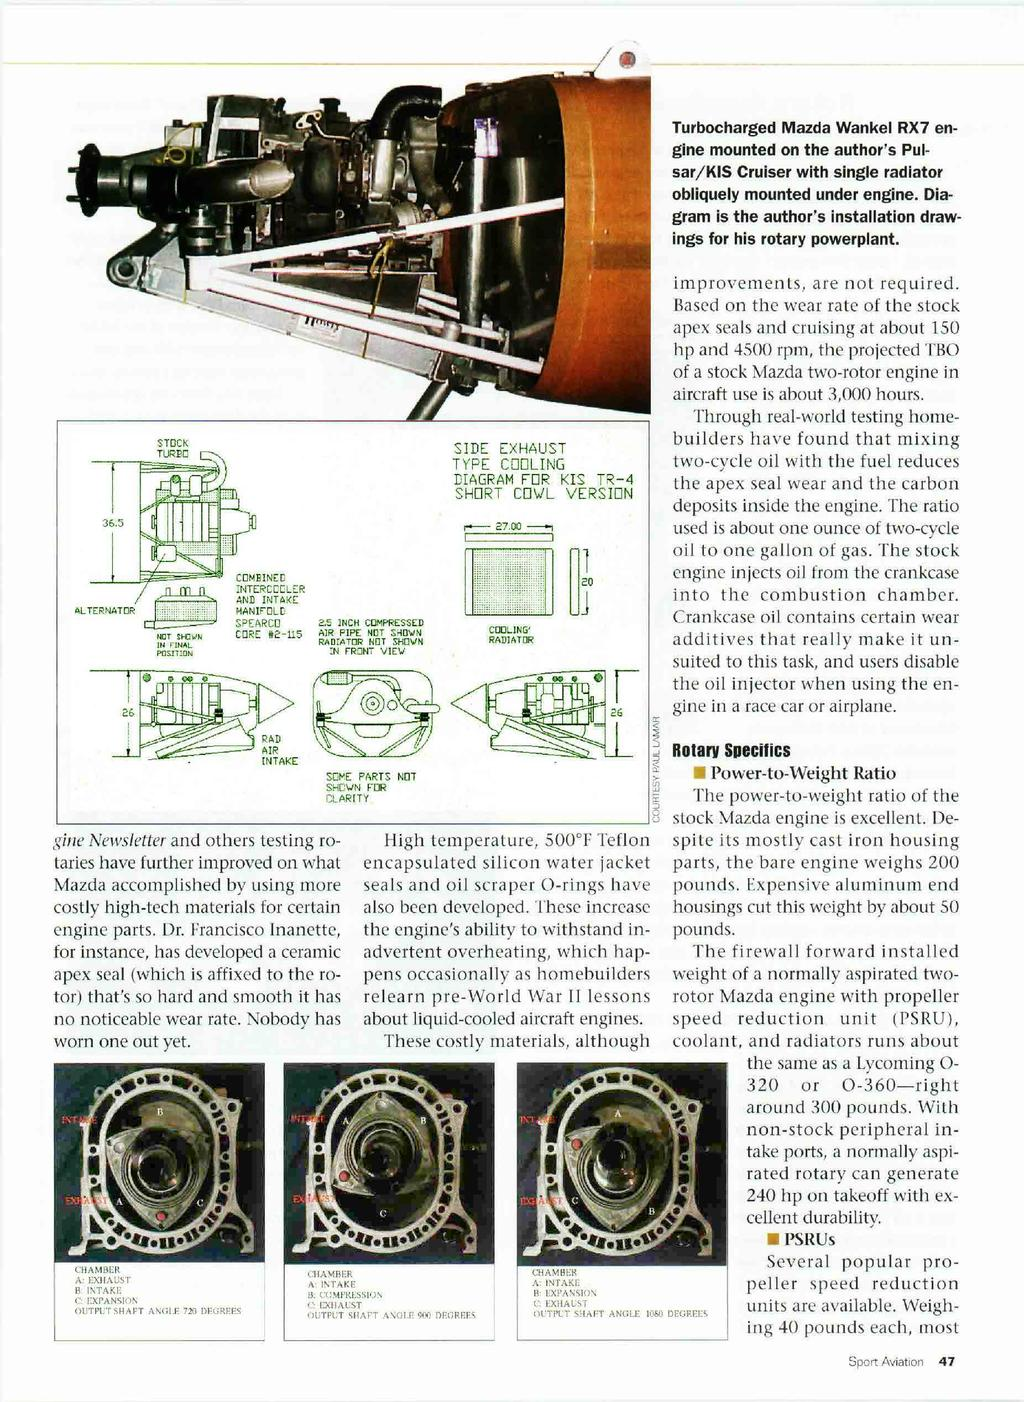 L Exploring The Mazda Wankel Rotary As An Alternative Aircraft 1993 Rx 7 Engine Diagram Turbocharged Rx7 Mounted On Authors Pulsar